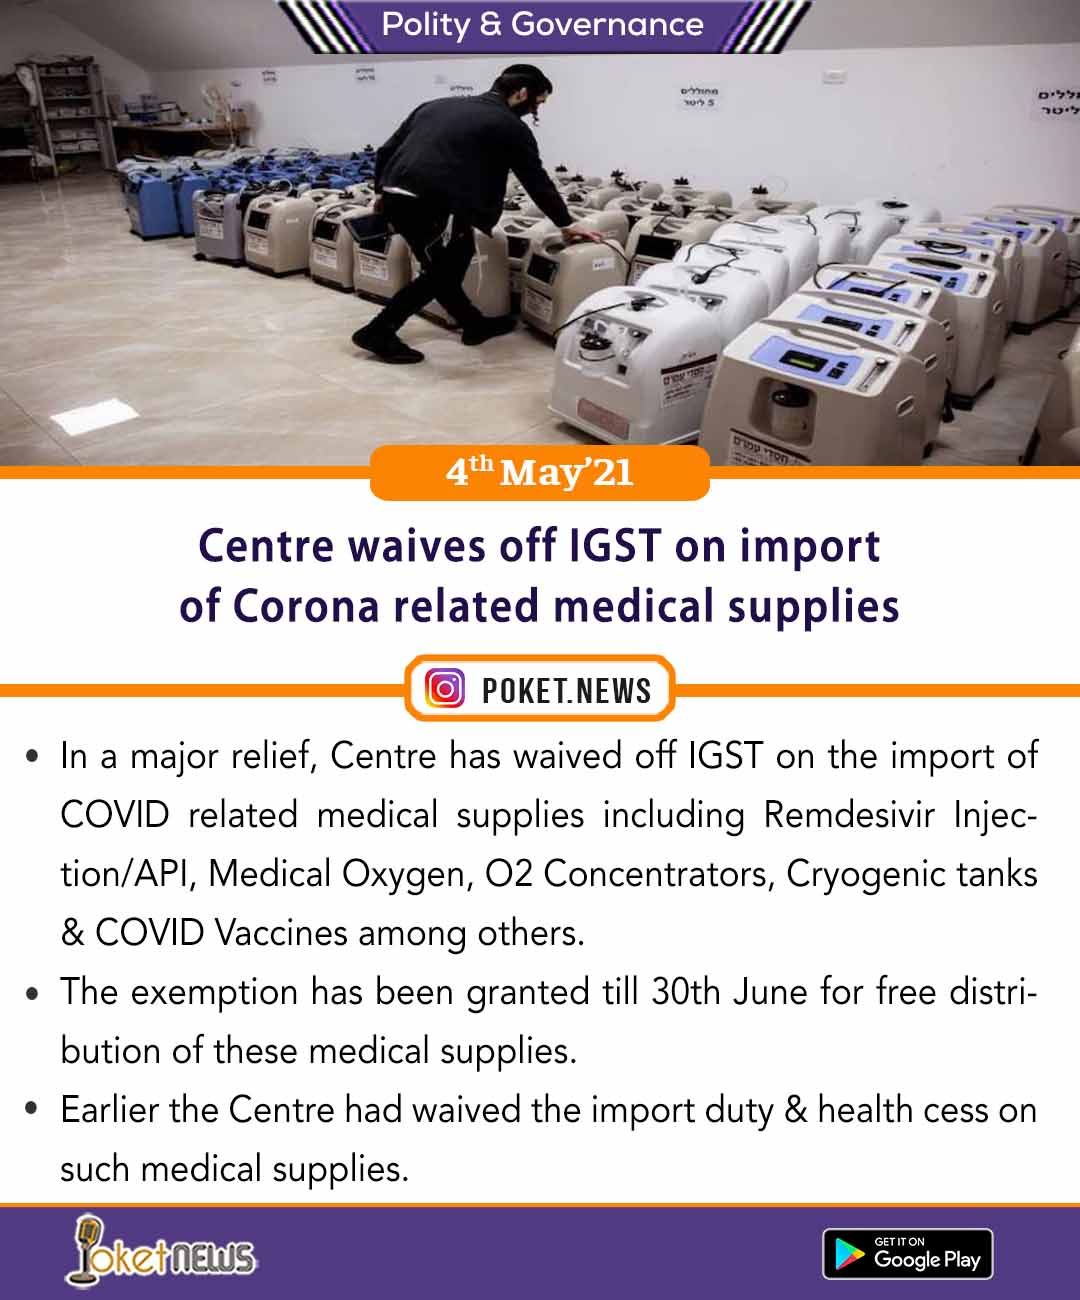 Centre waives off IGST on import of Corona related medical supplies